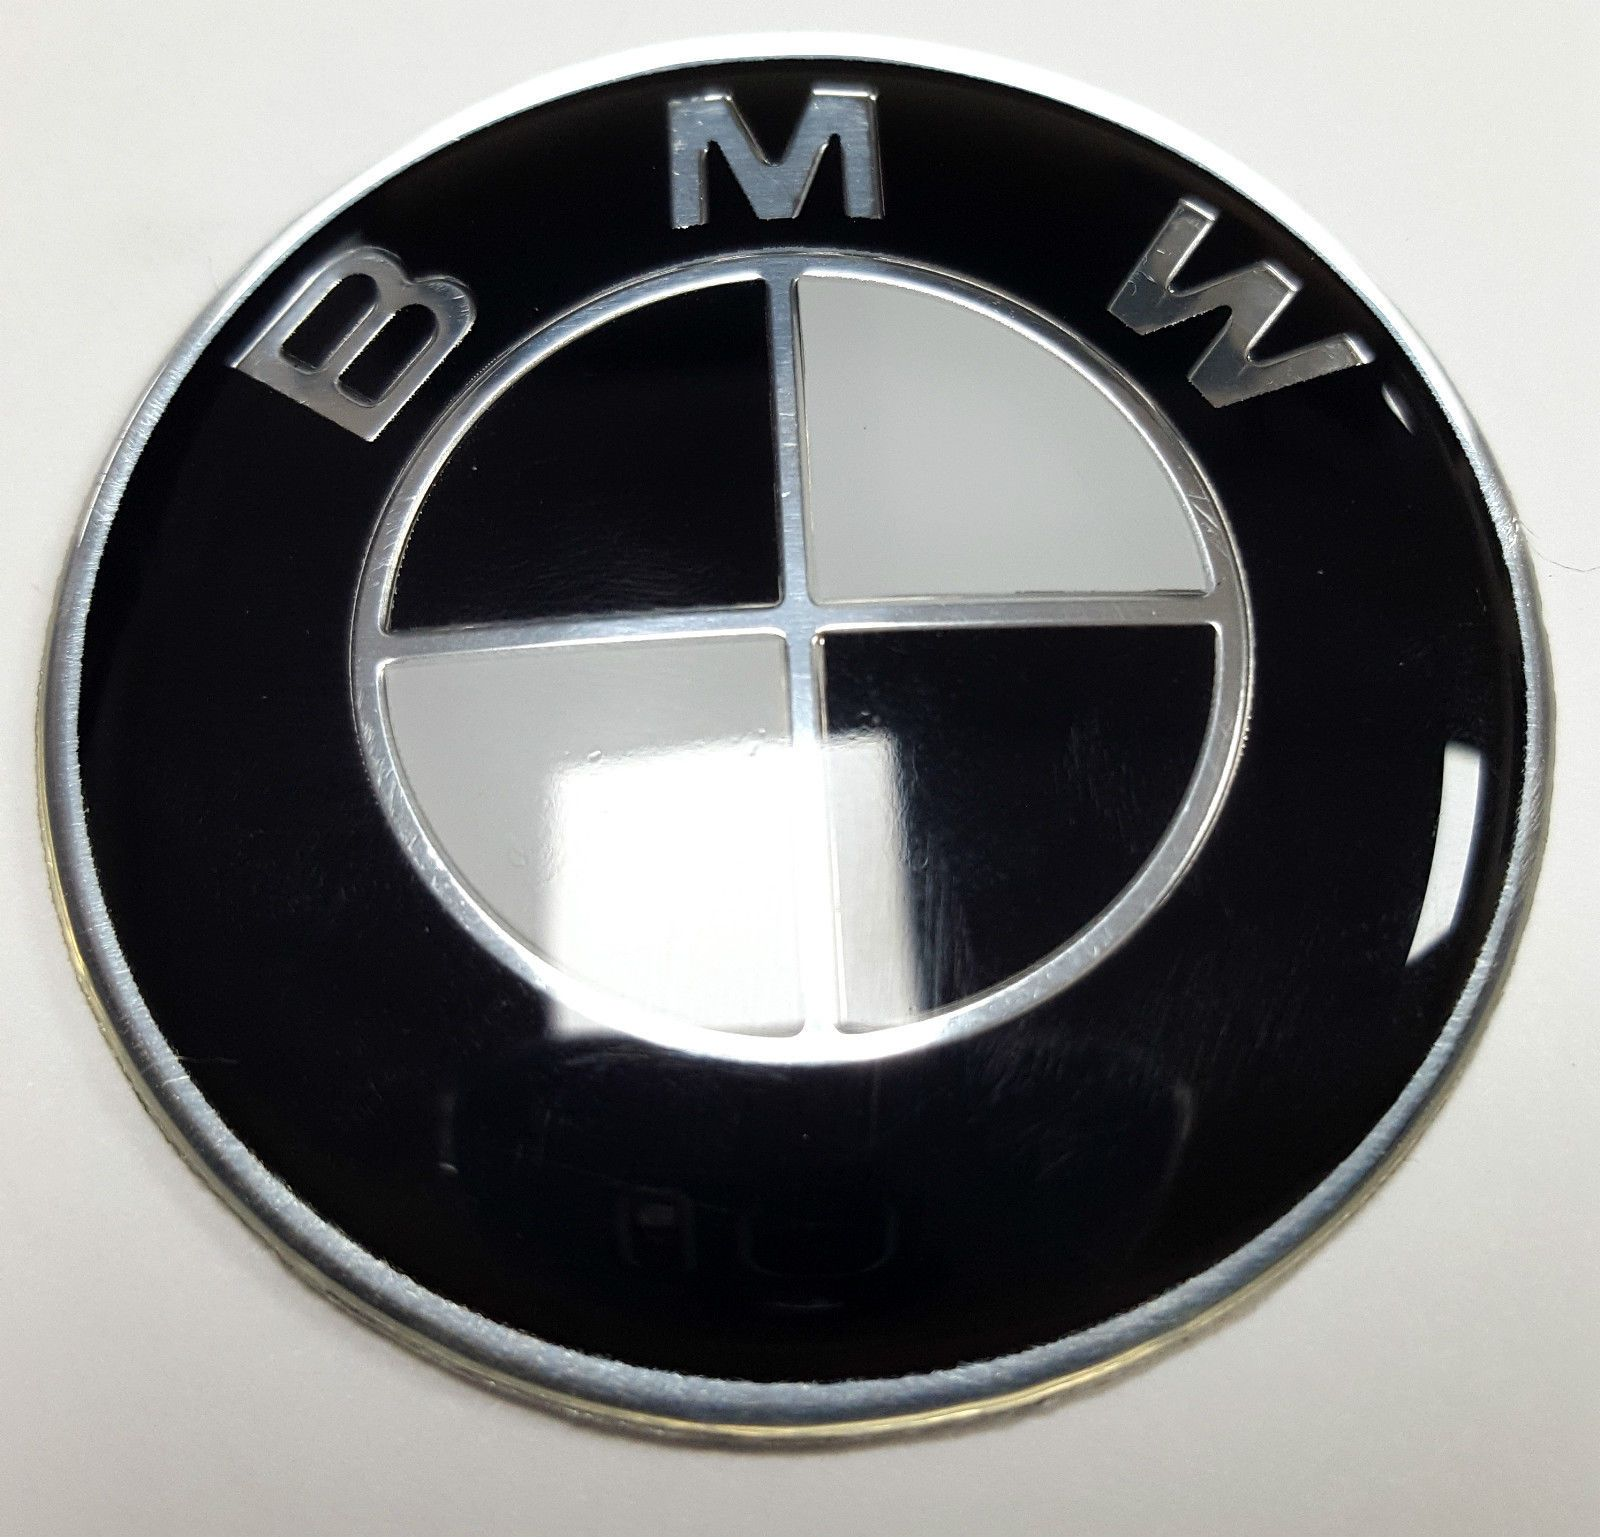 bmw motorcycle logo meaning and history symbol bmw - HD1600×1537